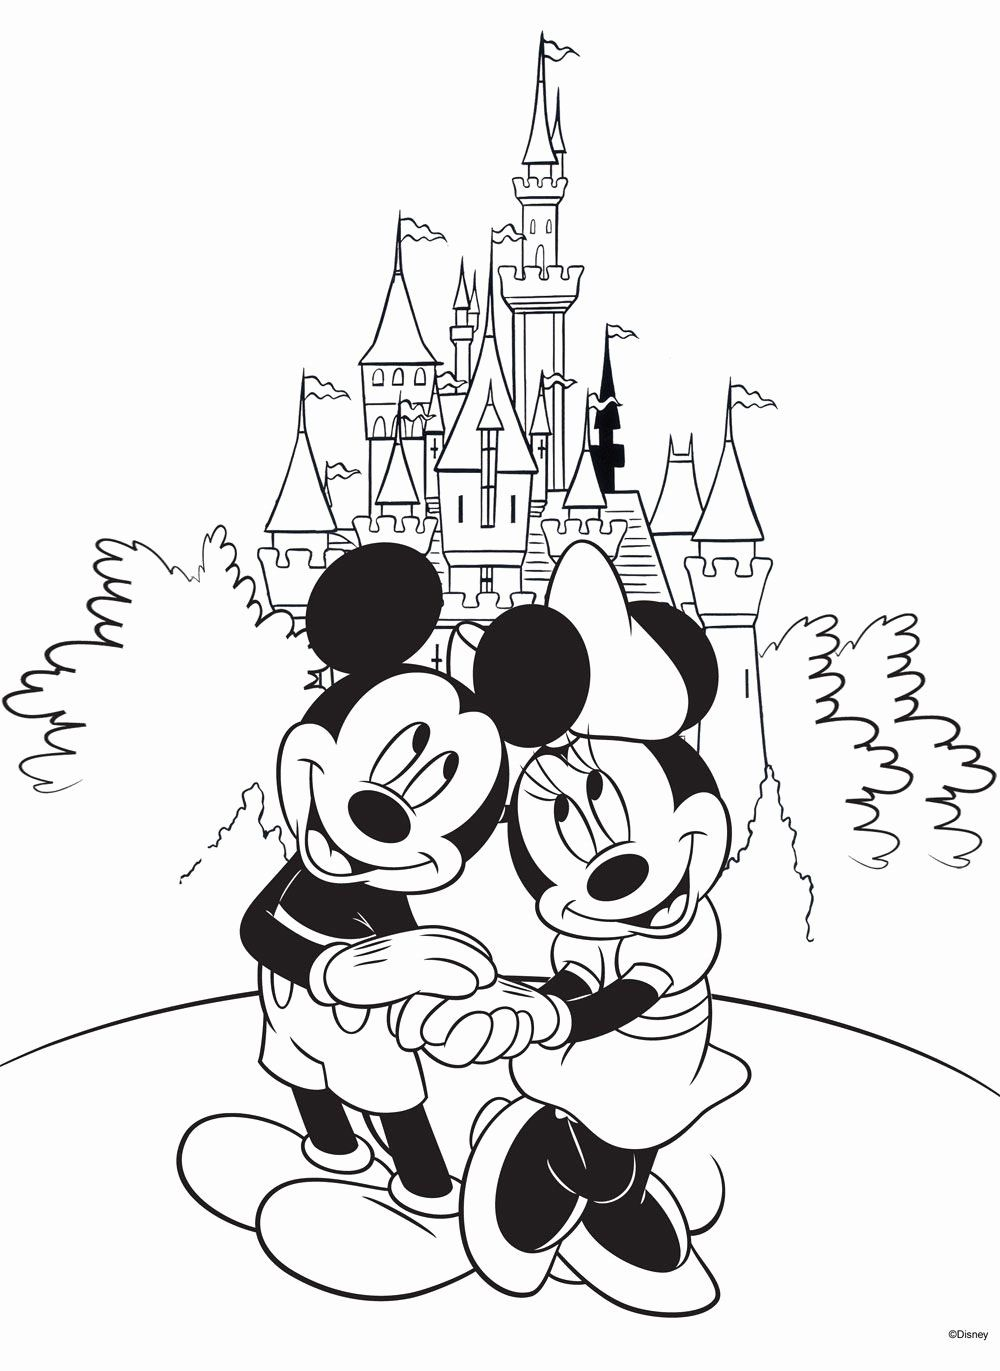 Free Coloring Sheets Disney New Free Disney Coloring Pages Disneycoloring Pages In 2020 Disney Coloring Sheets Disney Coloring Pages Free Disney Coloring Pages